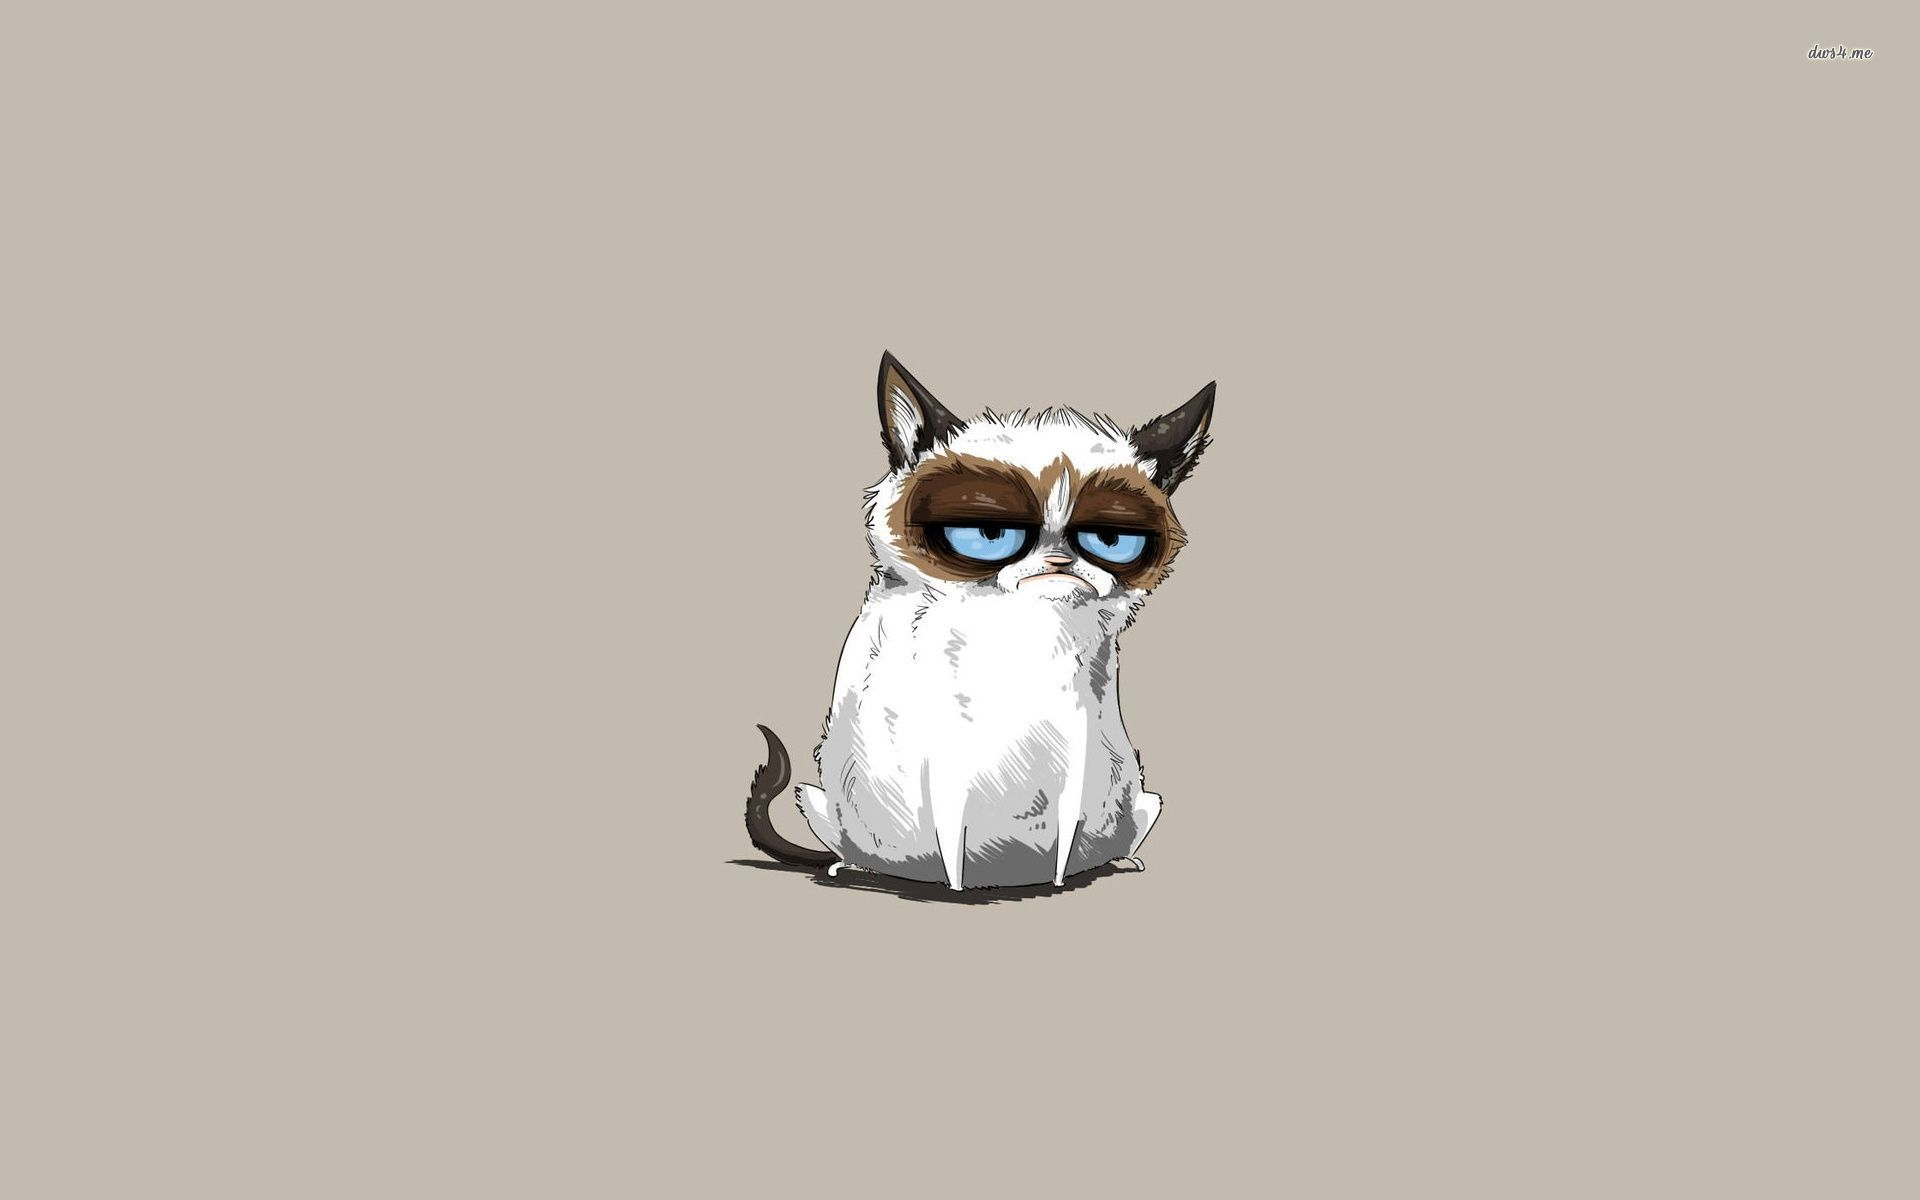 30251 grumpy cat 1920x1200 meme wallpaperjpg 1920x1200